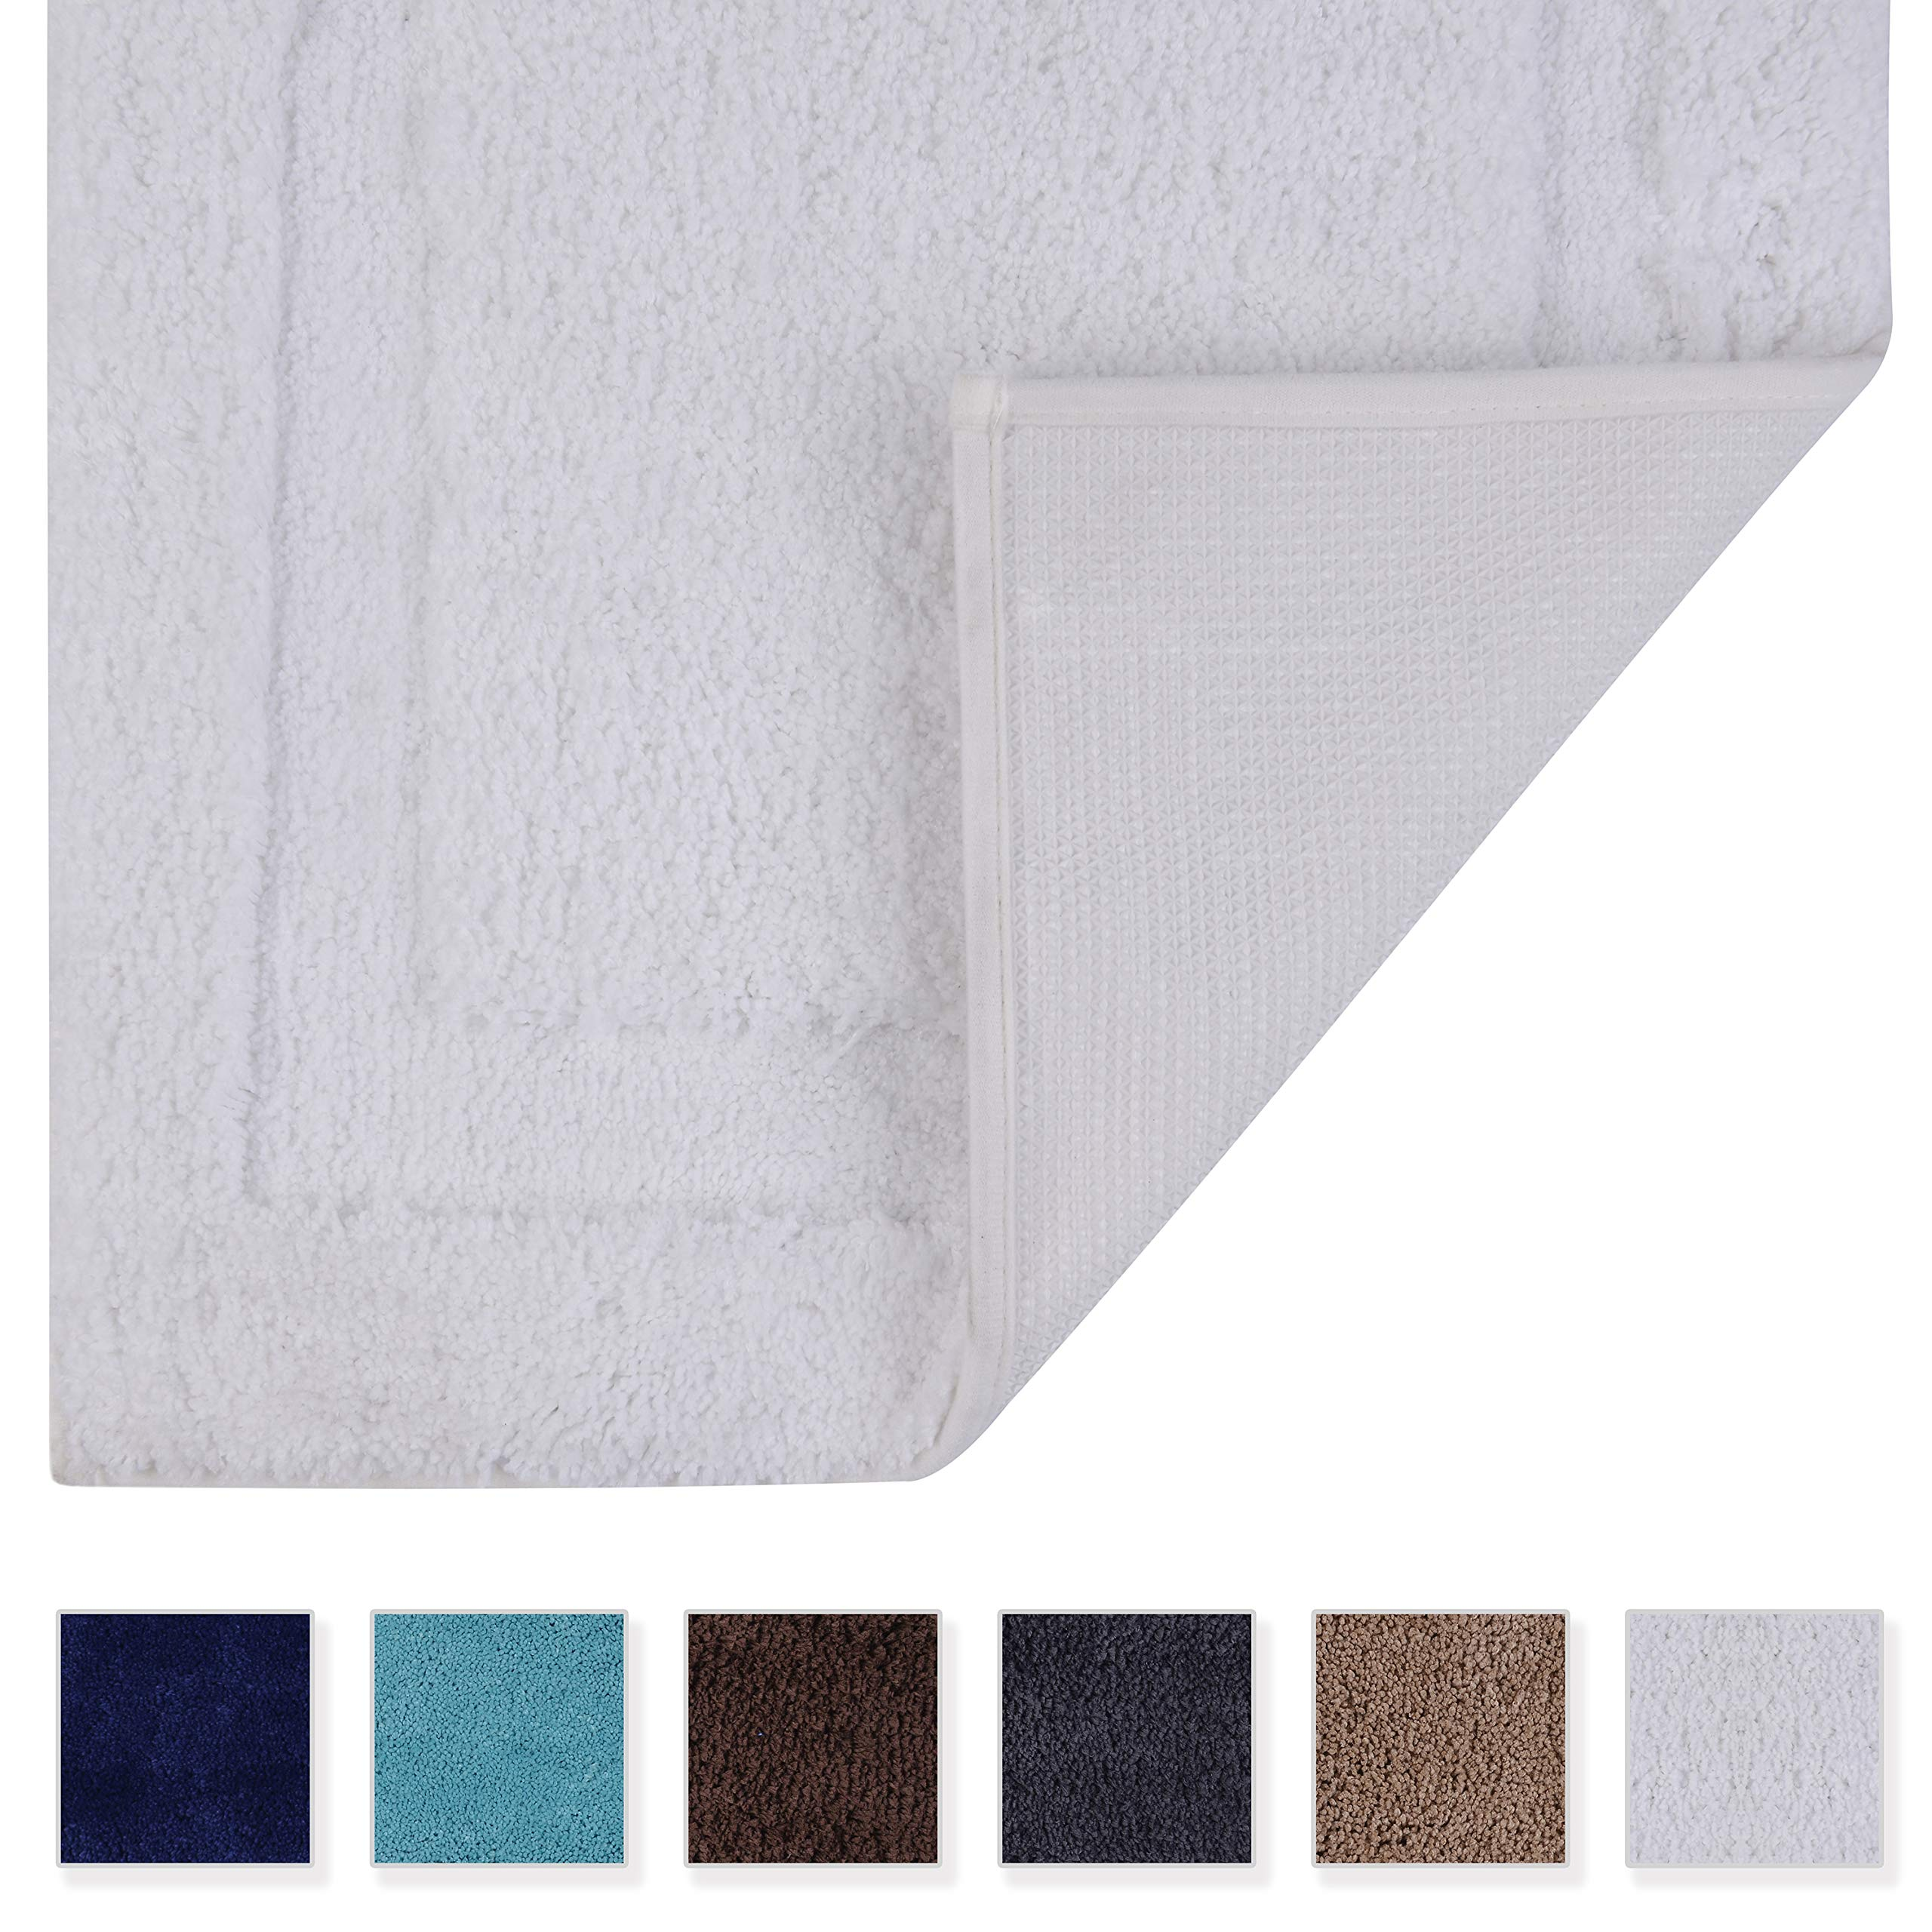 TOMORO Microfibers Non-Slip Bathroom Rug – Quick Dry, Super Absorbent and Soft Luxury Hotel Door Carpet Shower Shaggy Bath Mat Waterproof TPR Non-Skid Backing 24 x 39 inch White